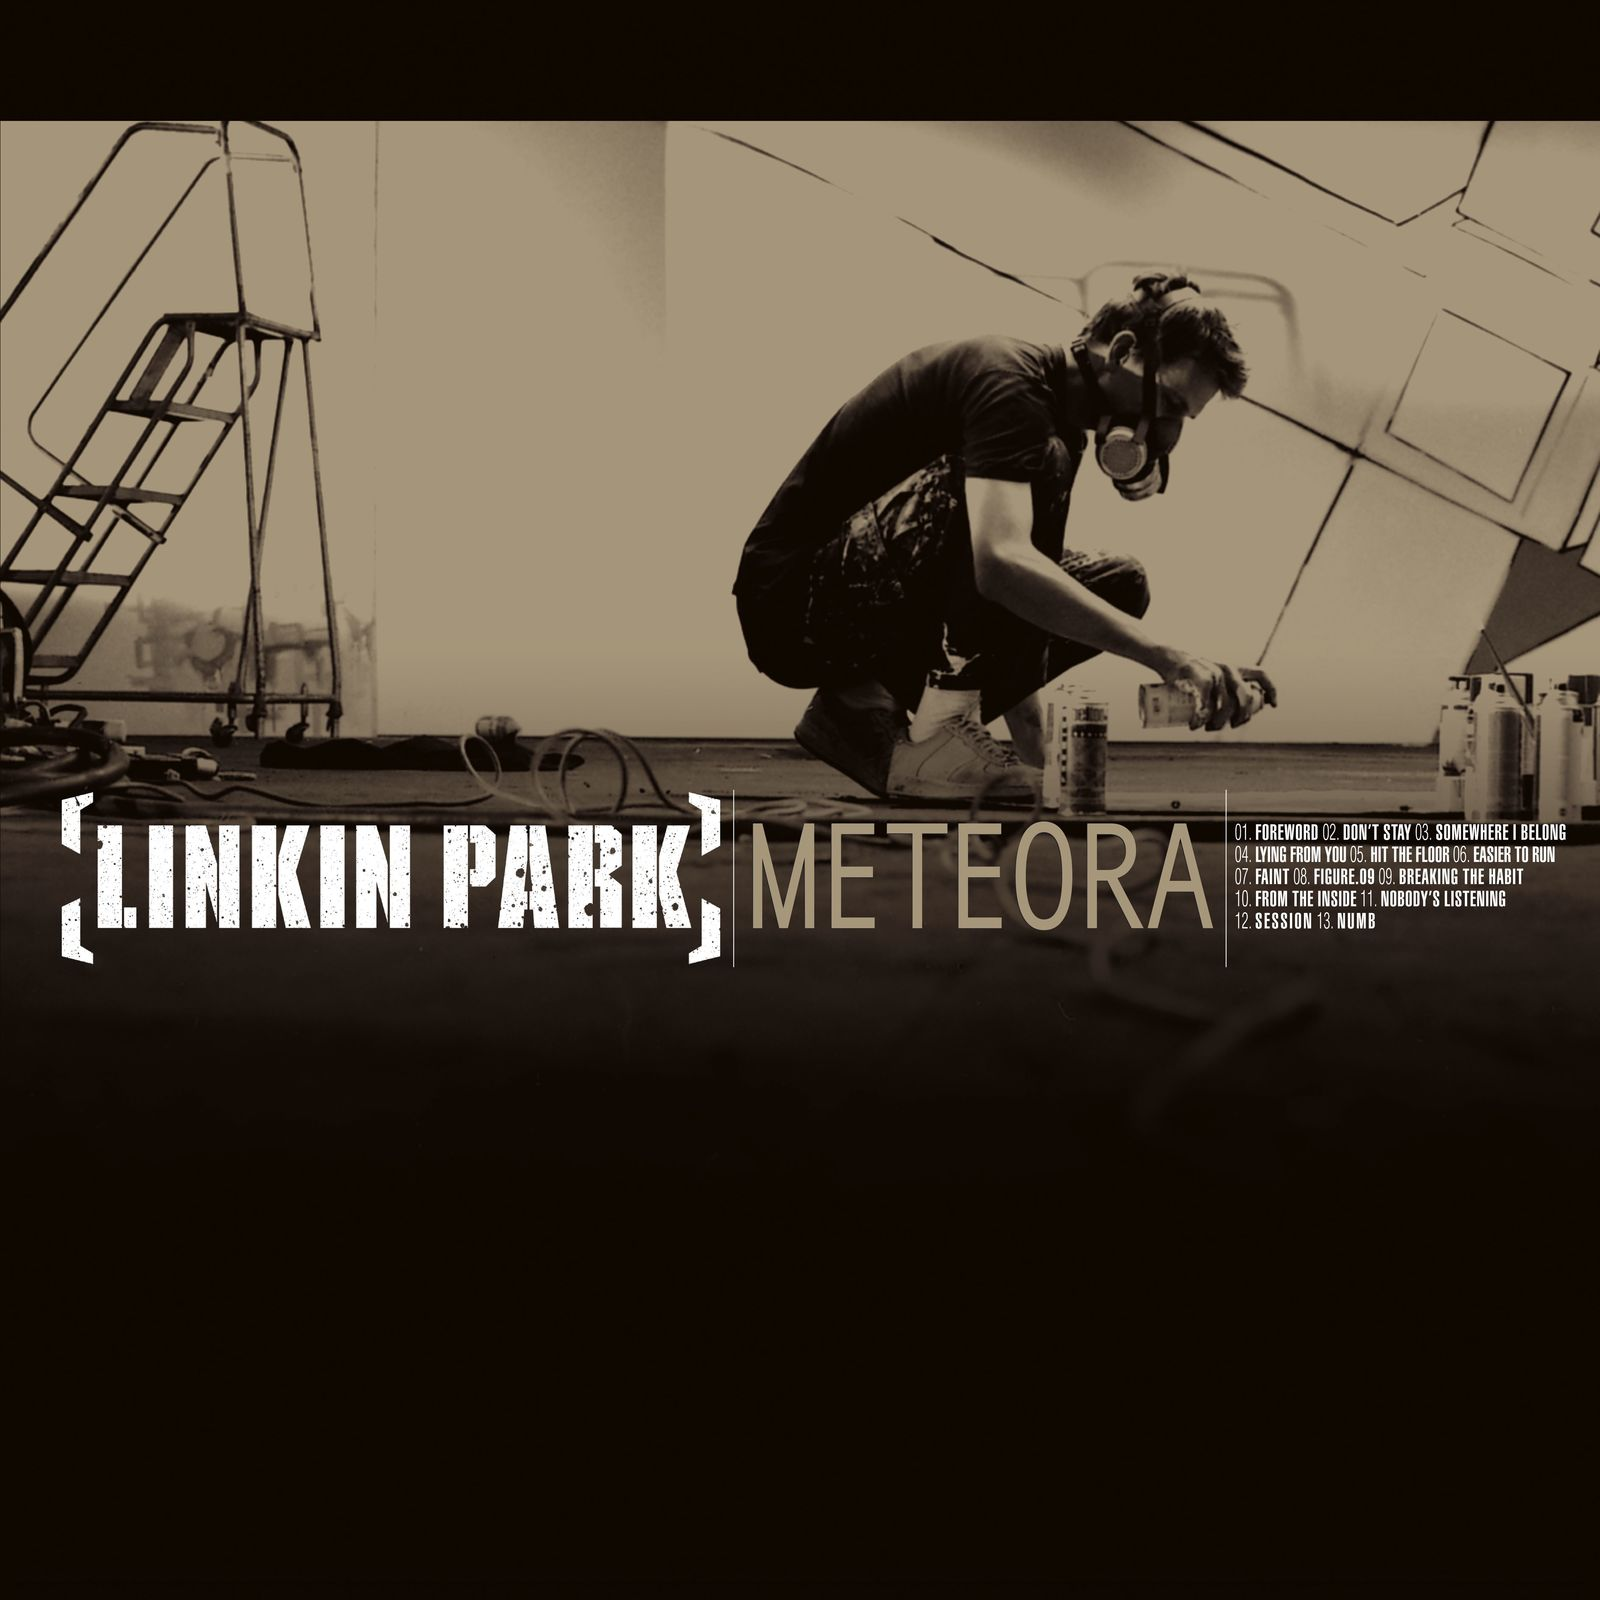 Meteora by Linkin Park image